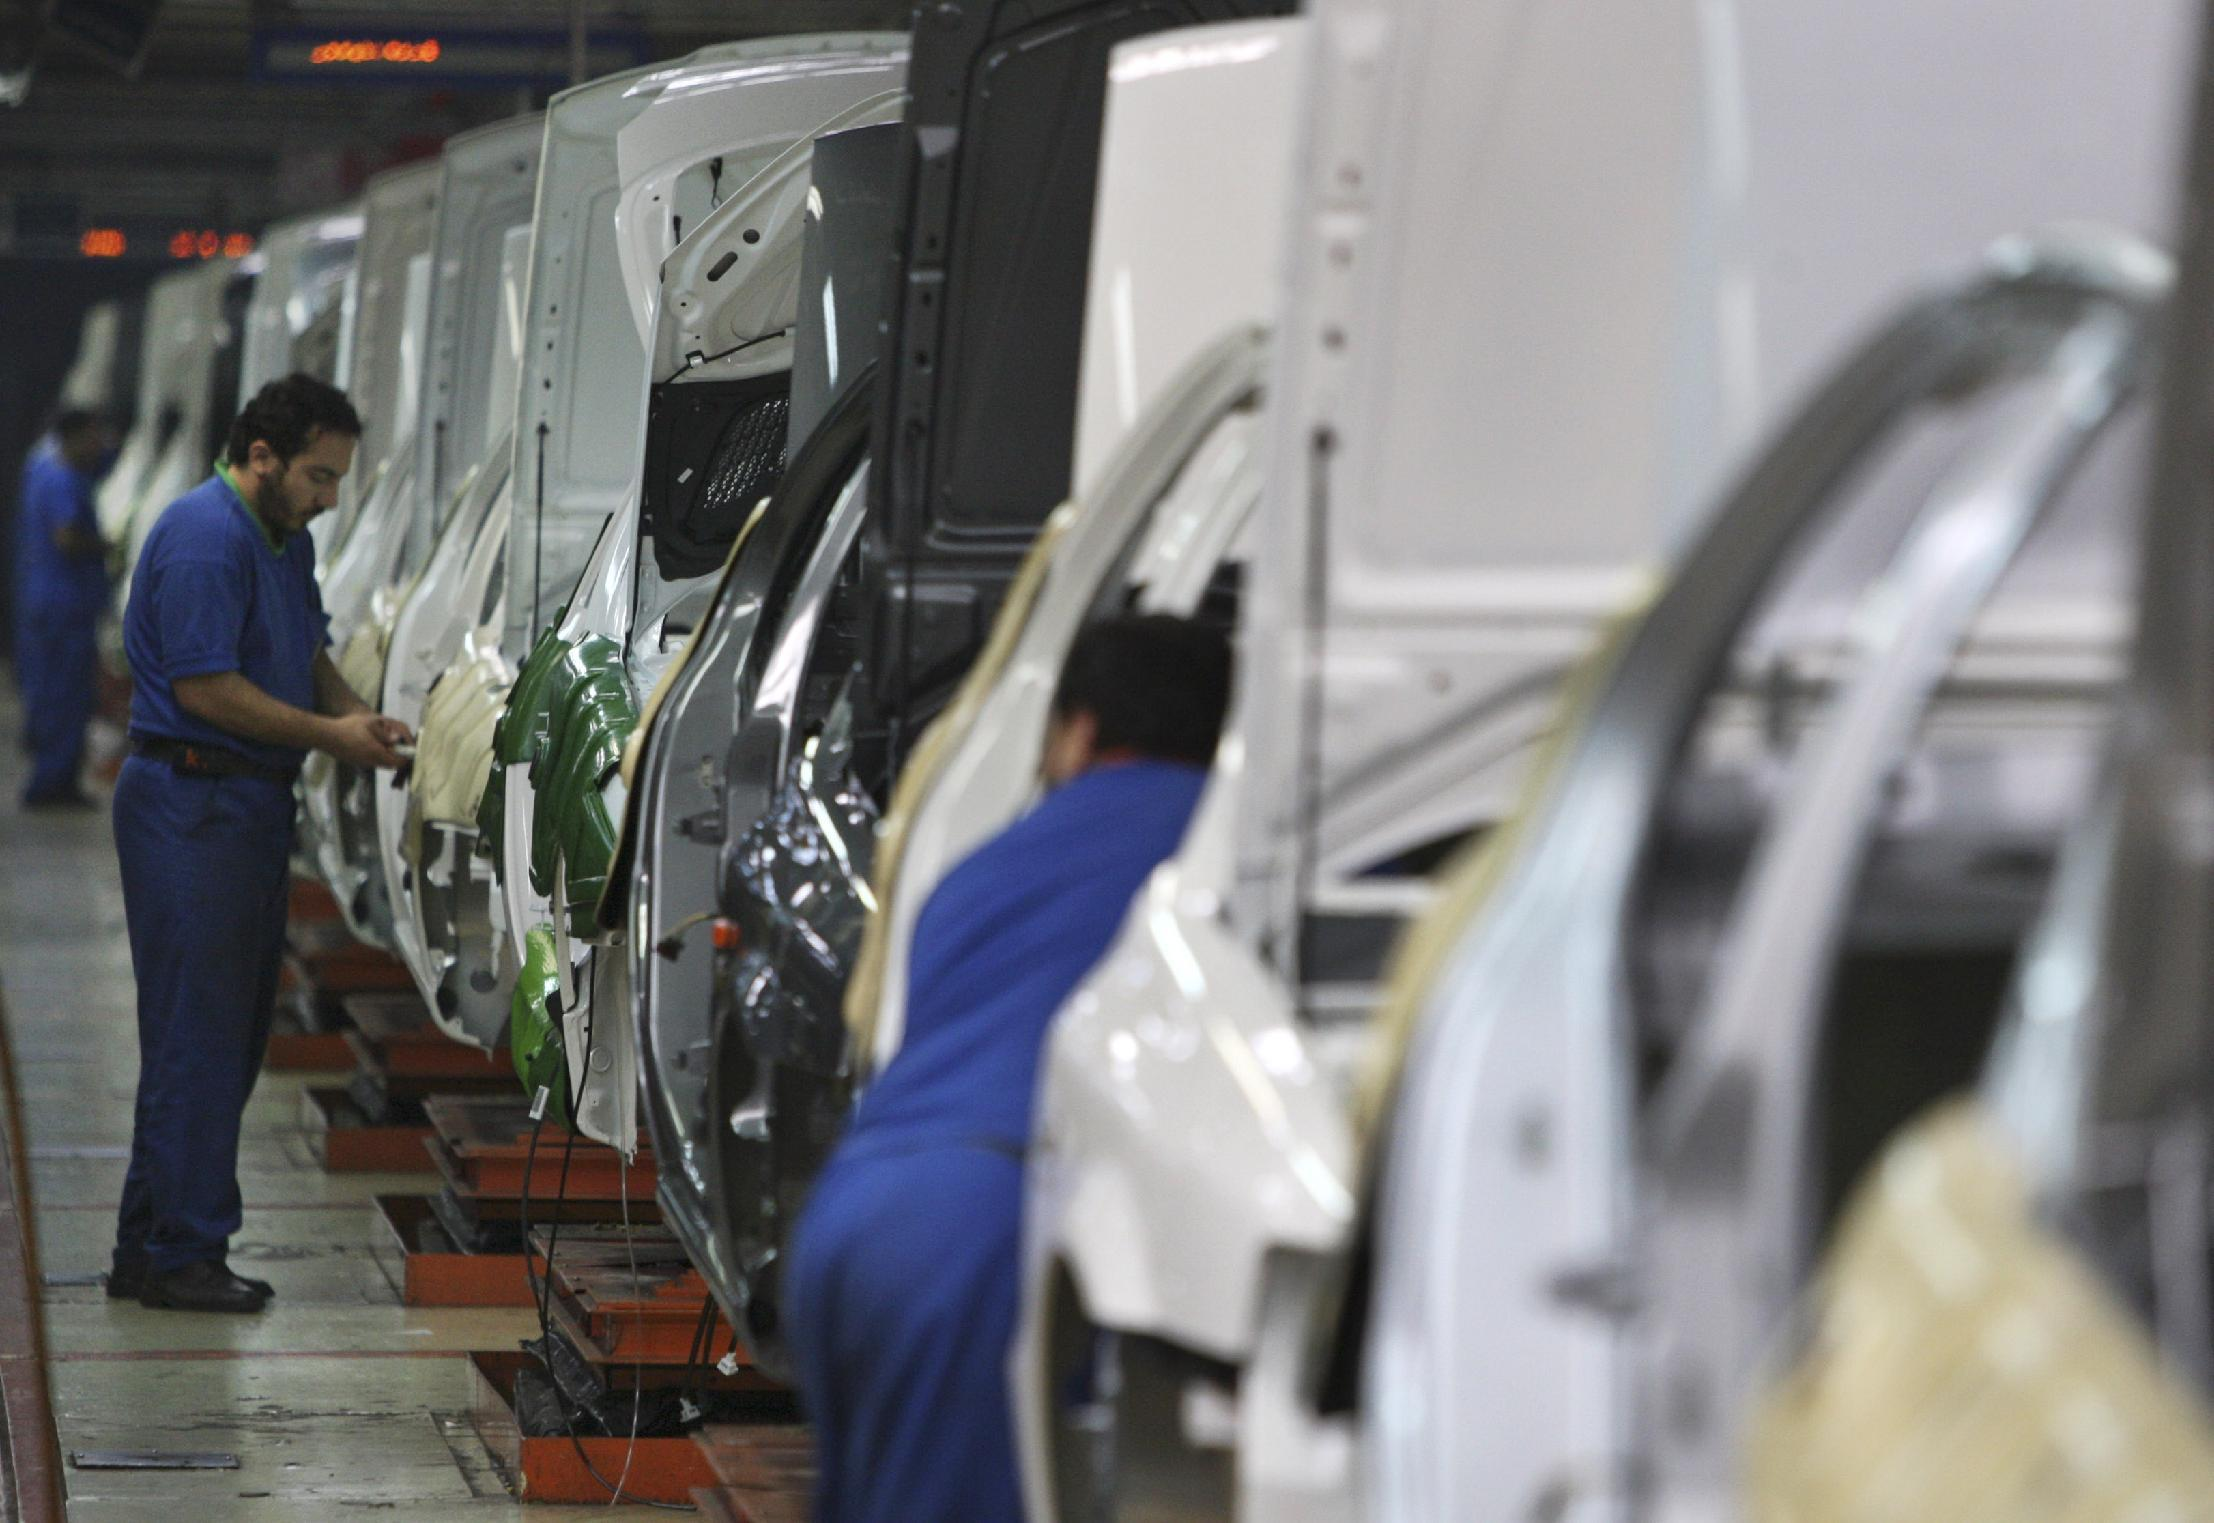 FILE - In this Feb. 7, 2009 file photo, Iranian workers assemble cars at the Iran Khodro automobile manufacturing plant, the biggest car manufacturing company in the Middle East, just outside Tehran, Iran. For many business leaders, Iran is a mouthwatering emerging market, and they could soon find themselves heading to Iran to secure new deals following the suspension of the first international sanctions. (AP Photo/Vahid Salemi, File)